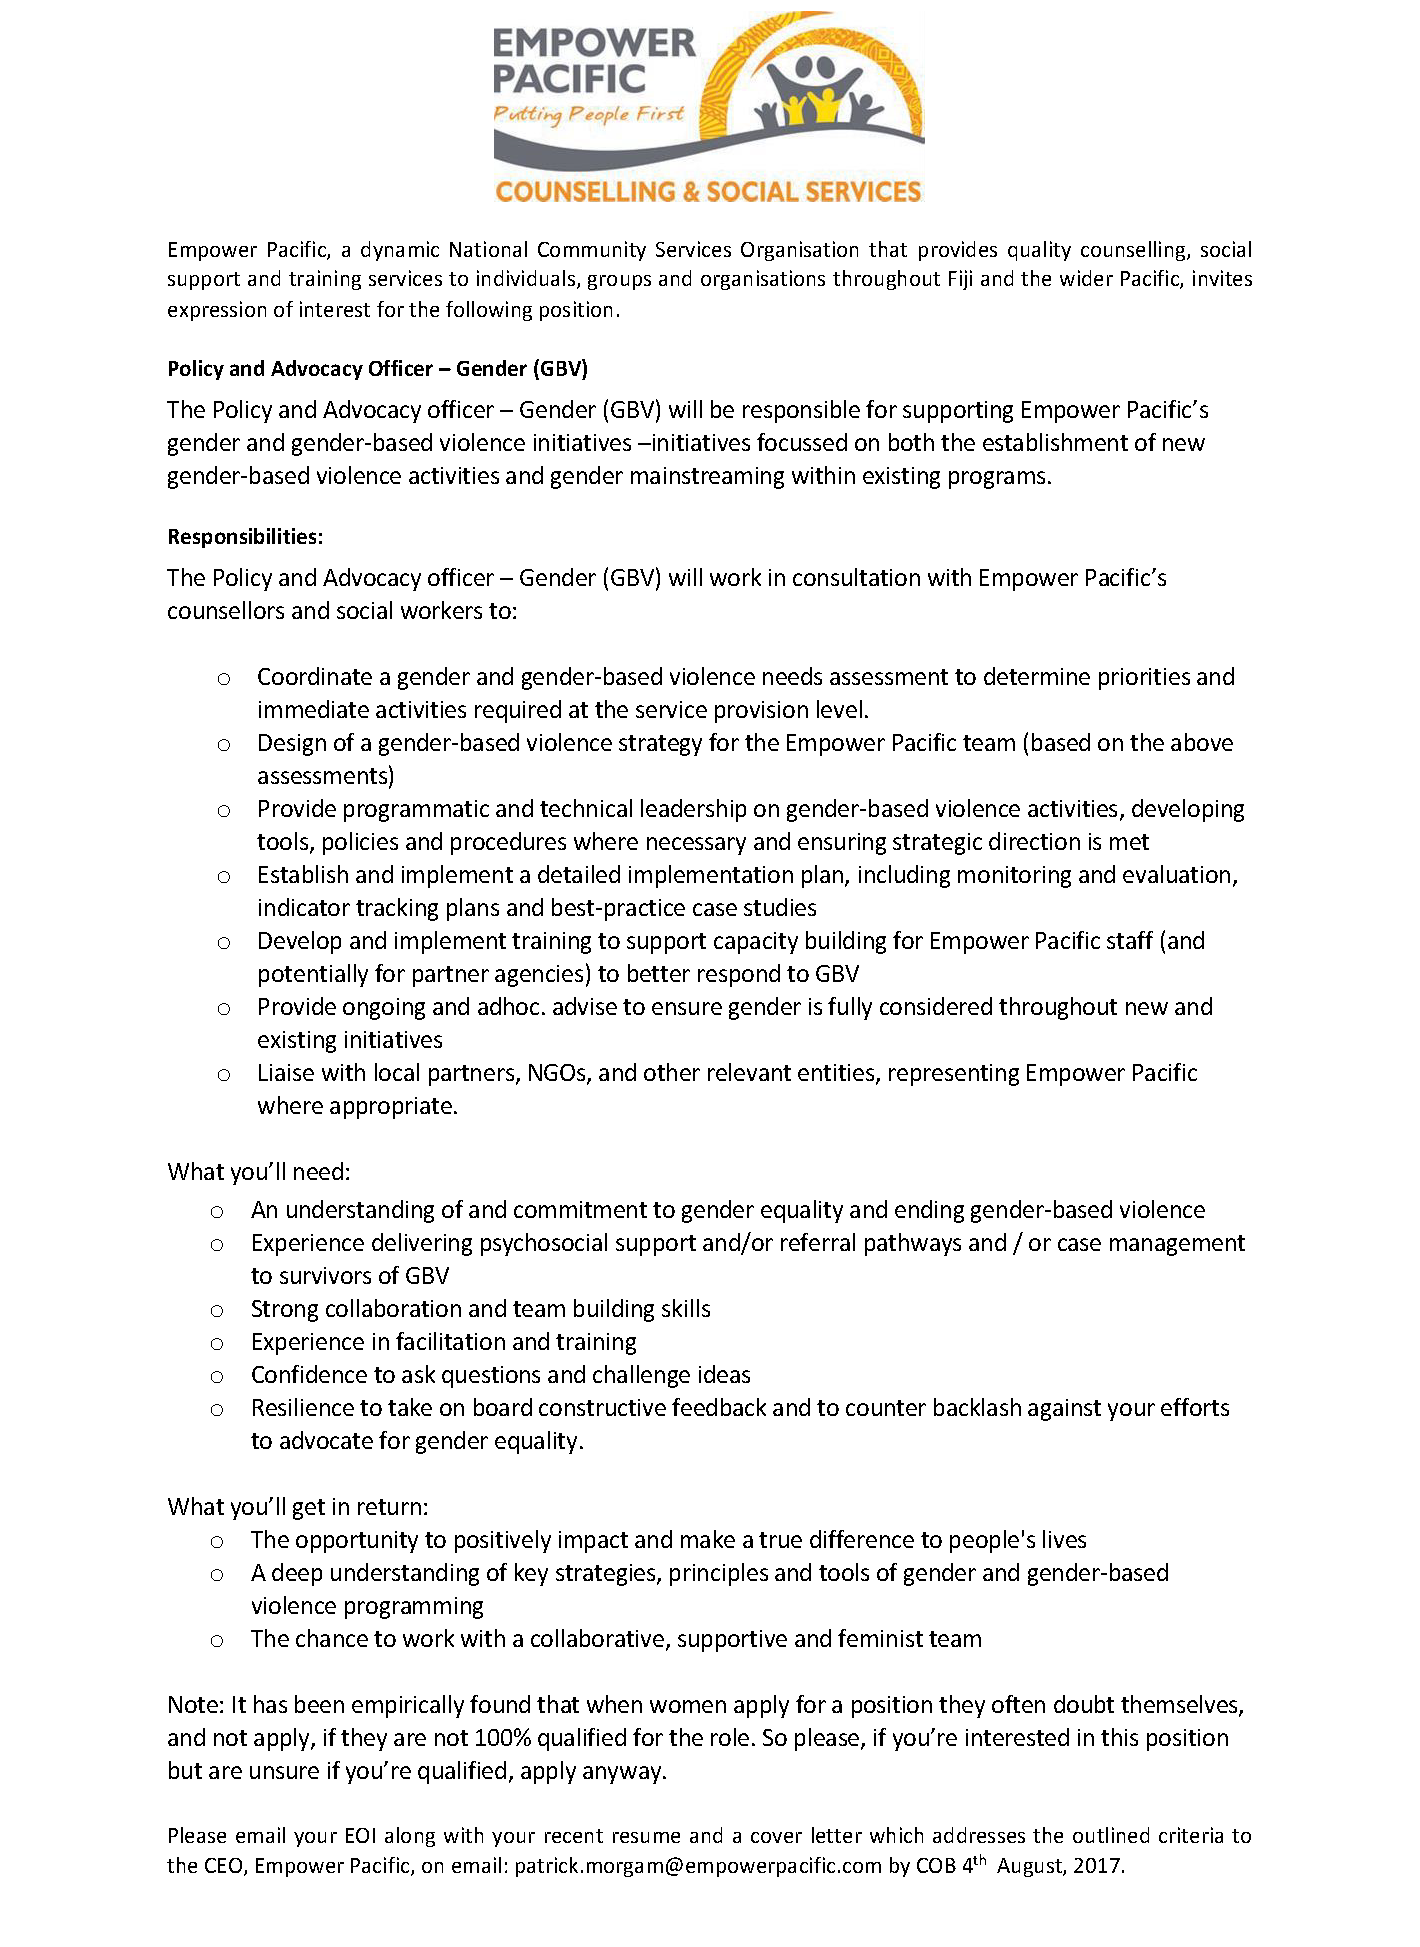 policy and advocacy officer